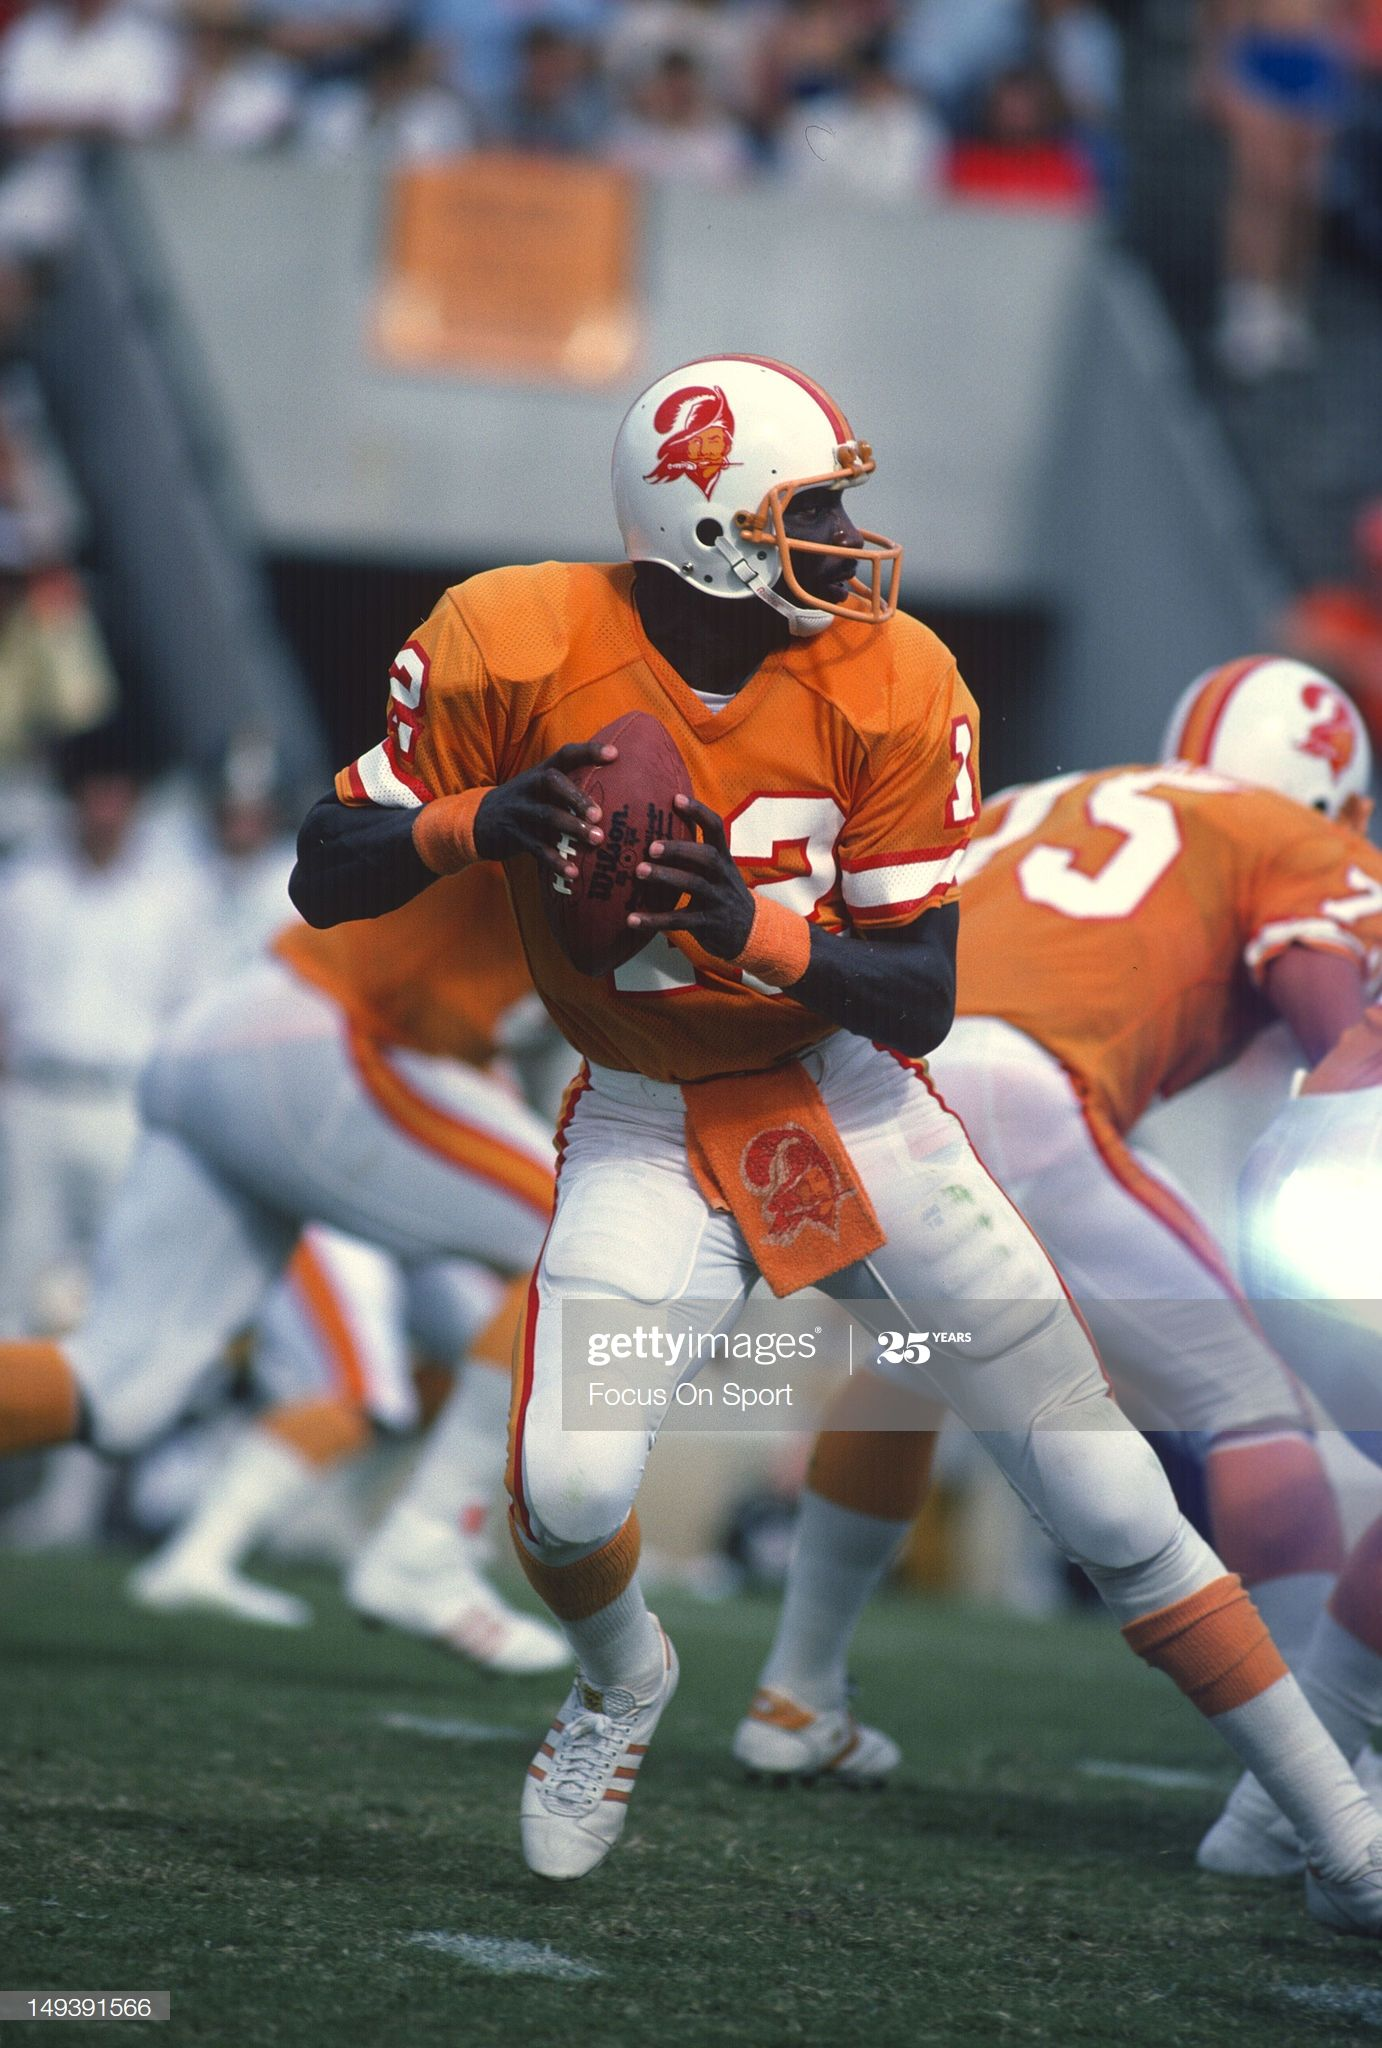 Quarterback Doug Williams Of The Tampa Bay Buccaneers Drops Back To In 2020 Doug Williams Nfl Football Players Buccaneers Football